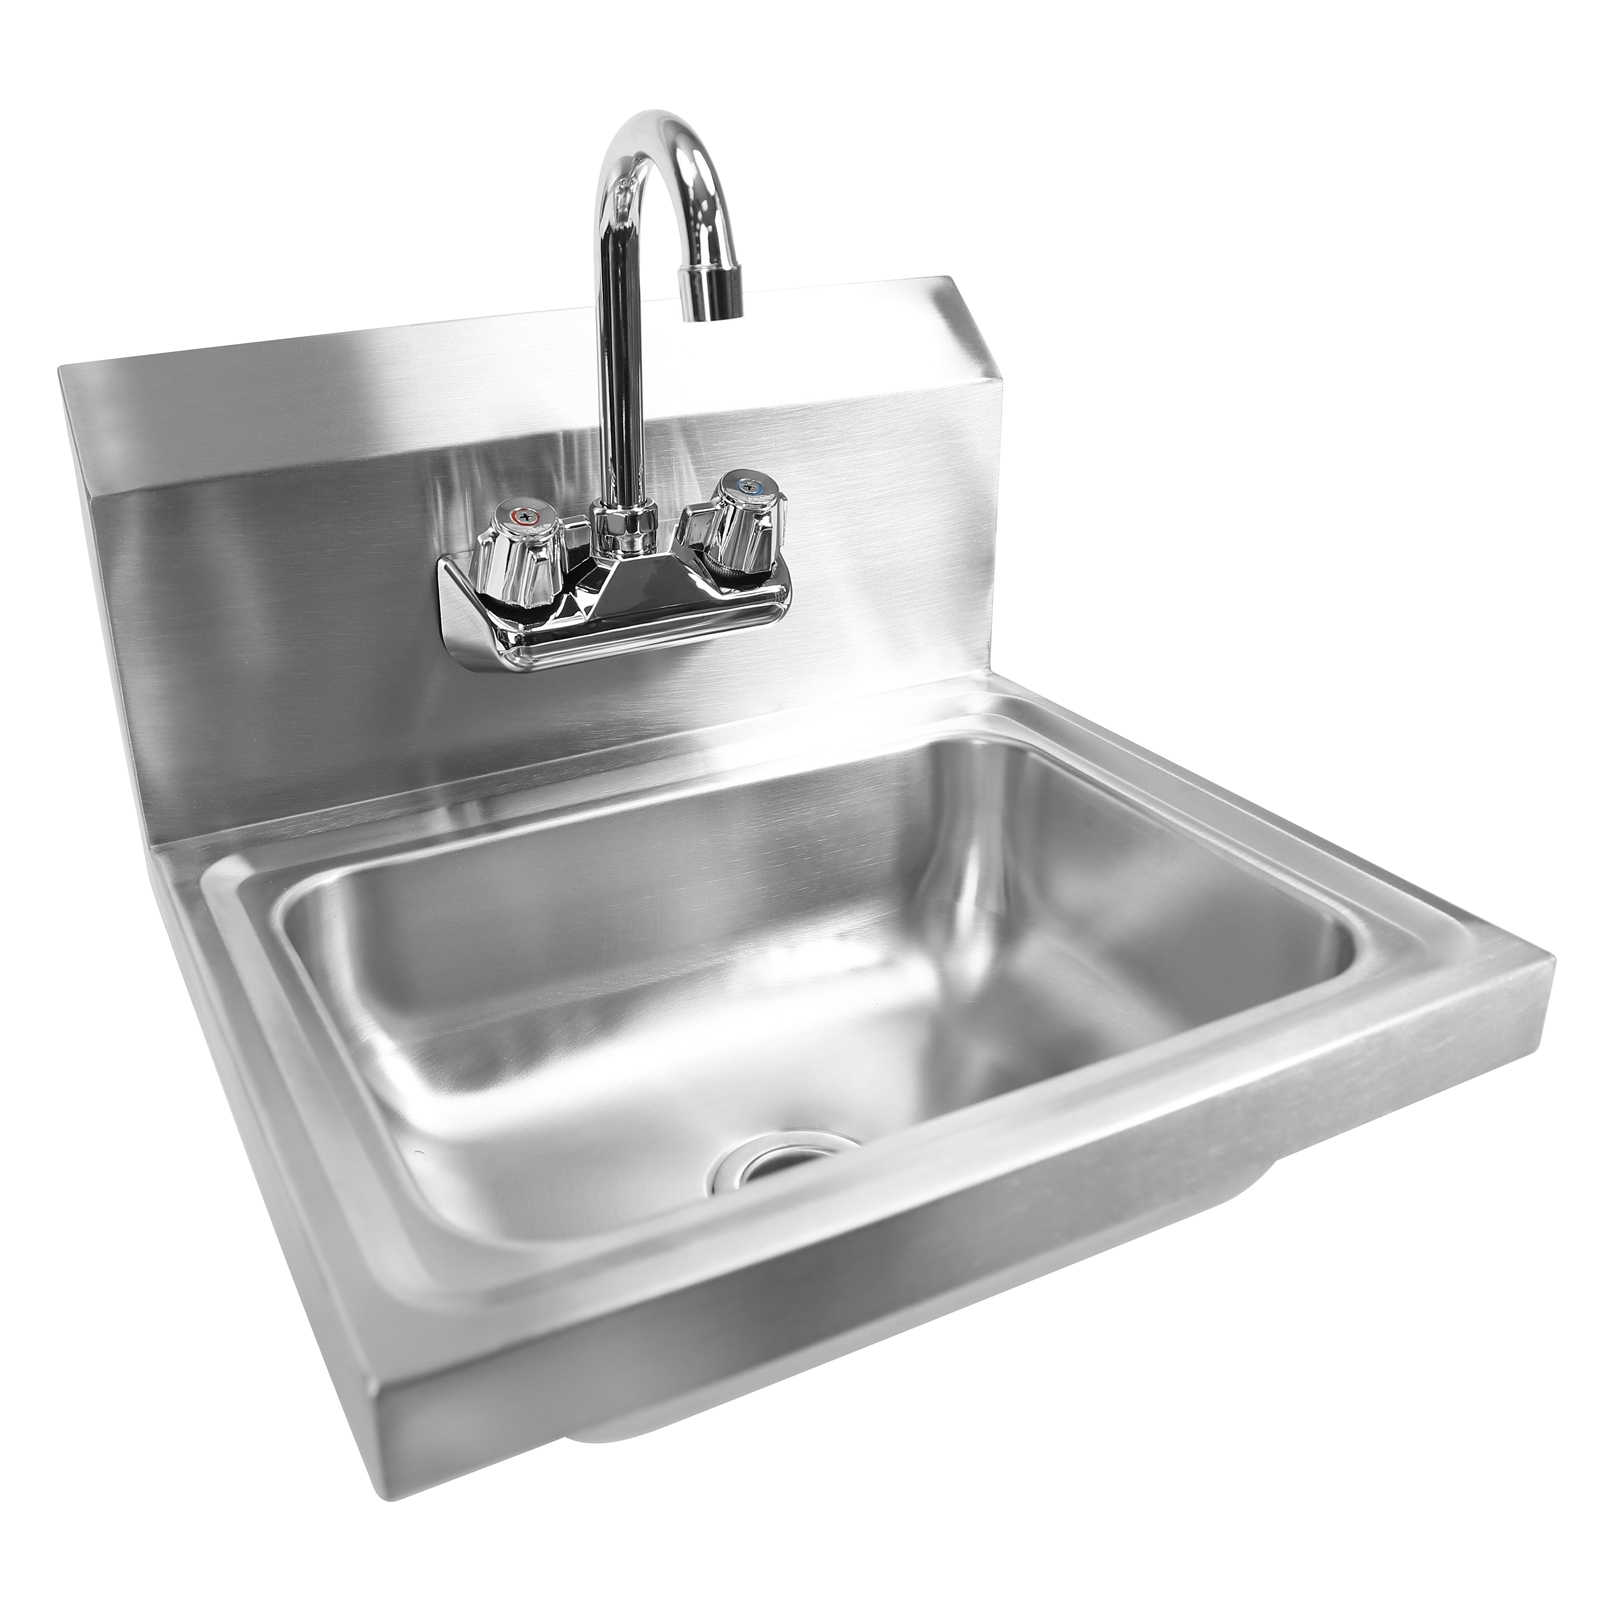 Charmant Gridmann Commercial NSF Stainless Steel Sink Wall Mount Hand Washing Basin  With Faucet